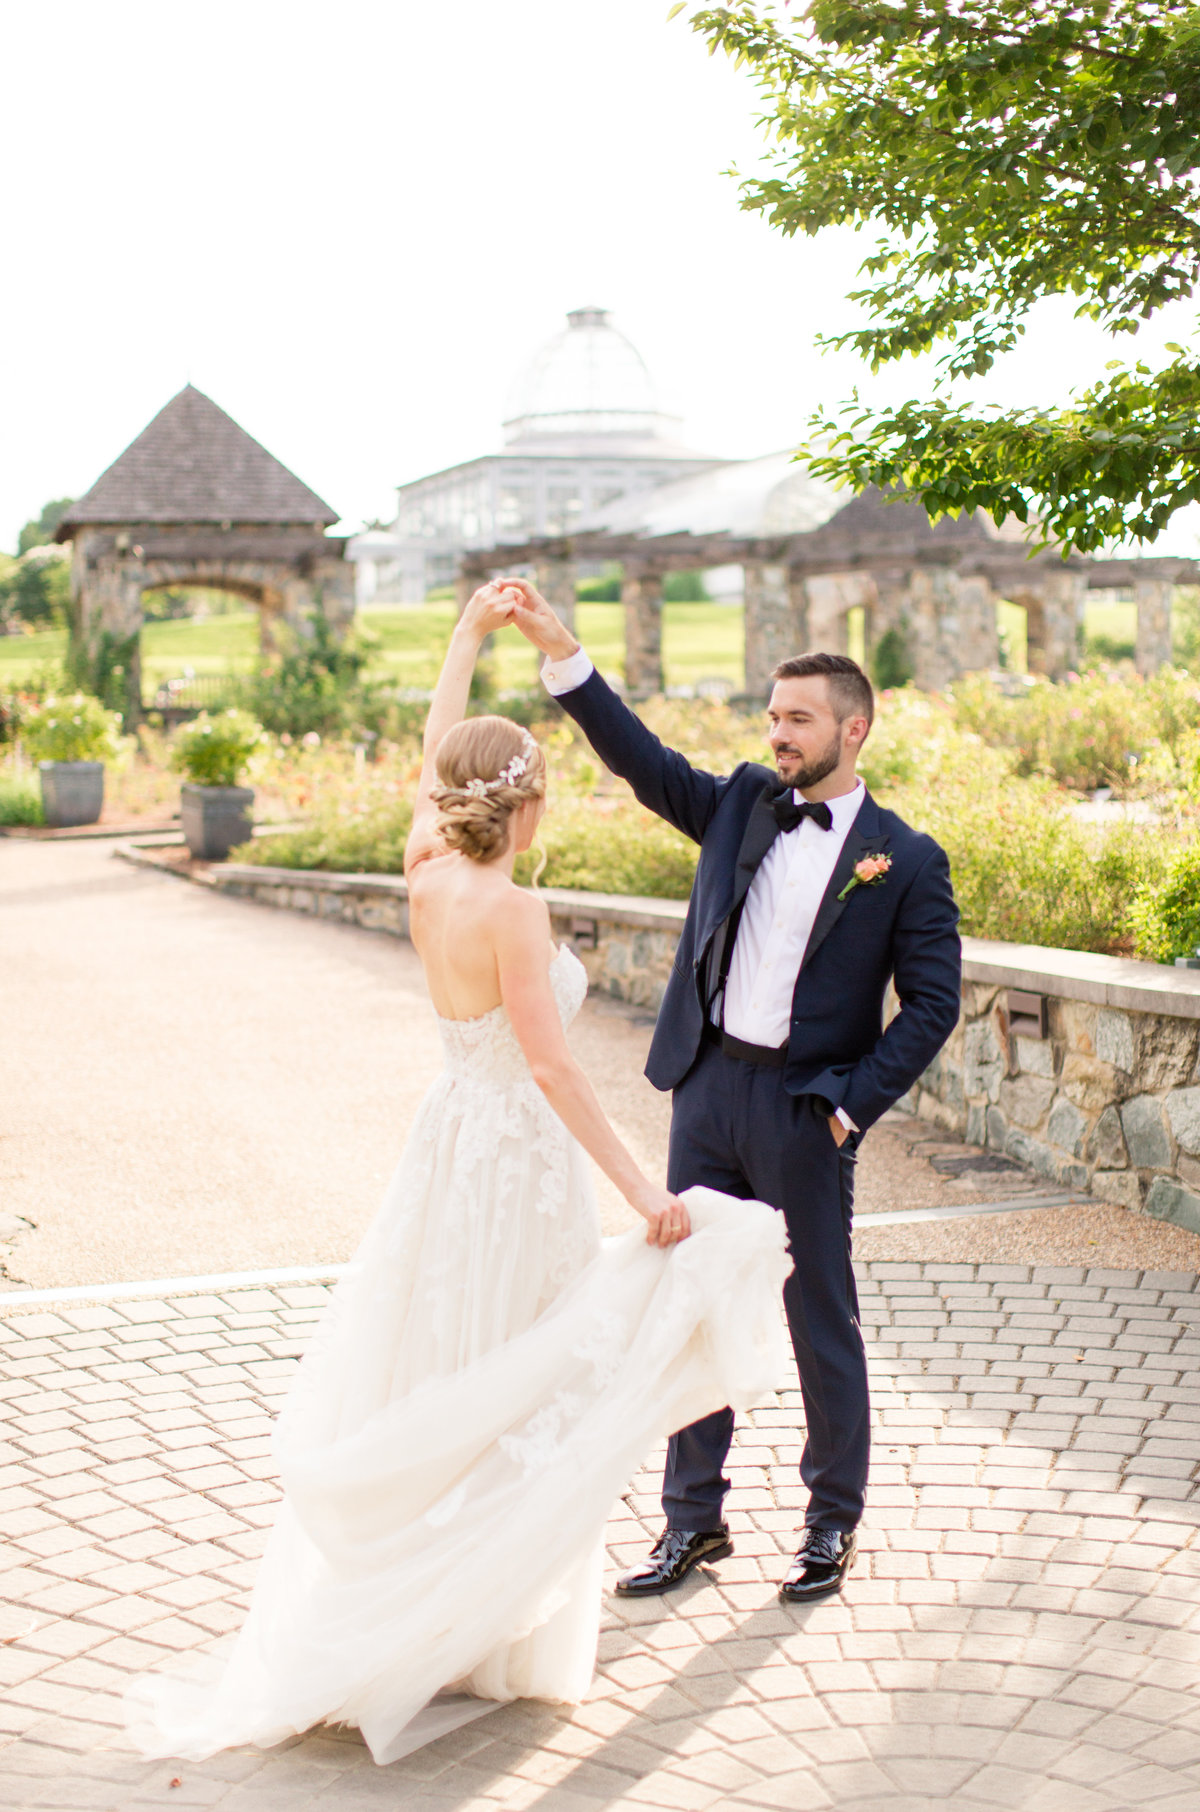 Lewis Ginter Botanical Garden wedding by Marie Hamilton Photography